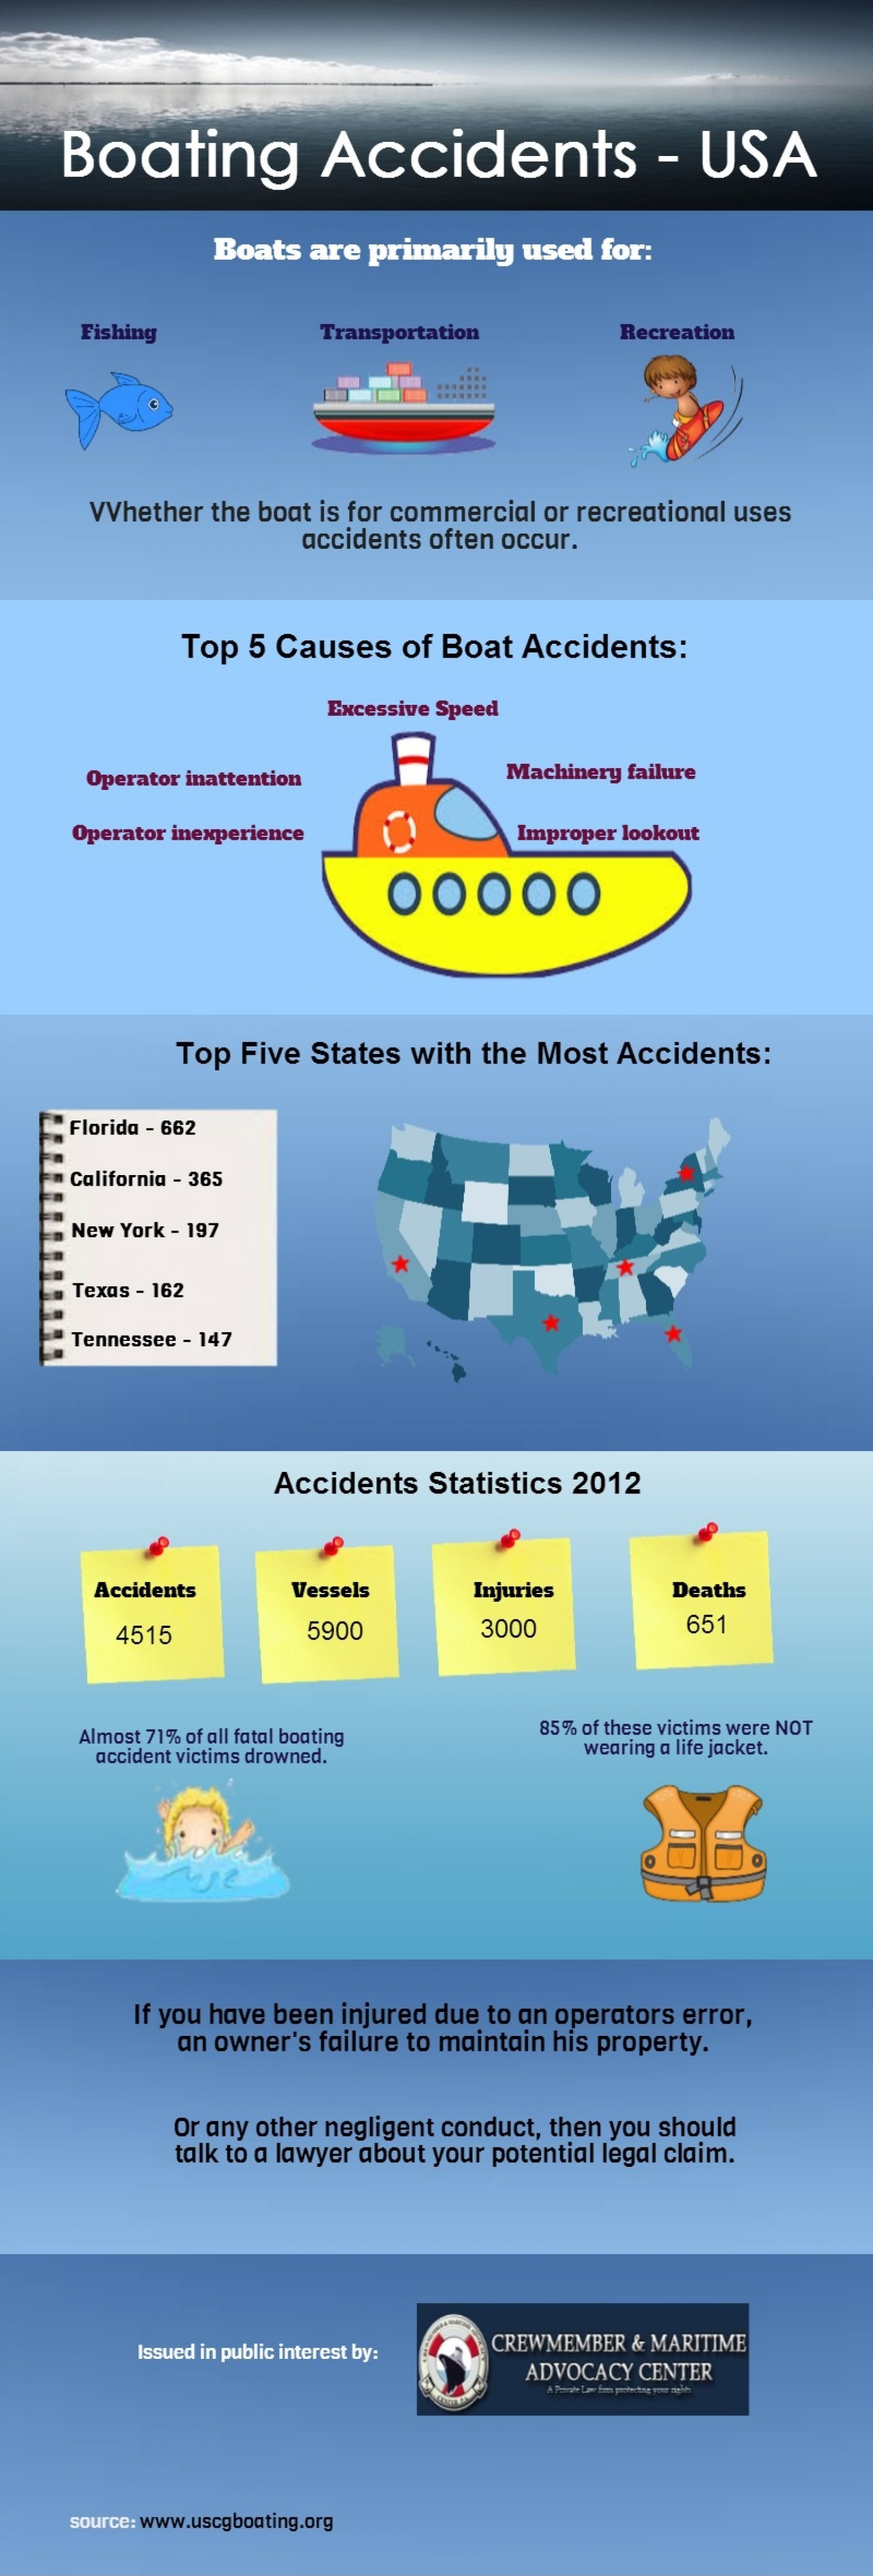 Boating Accidents - USA Infographic